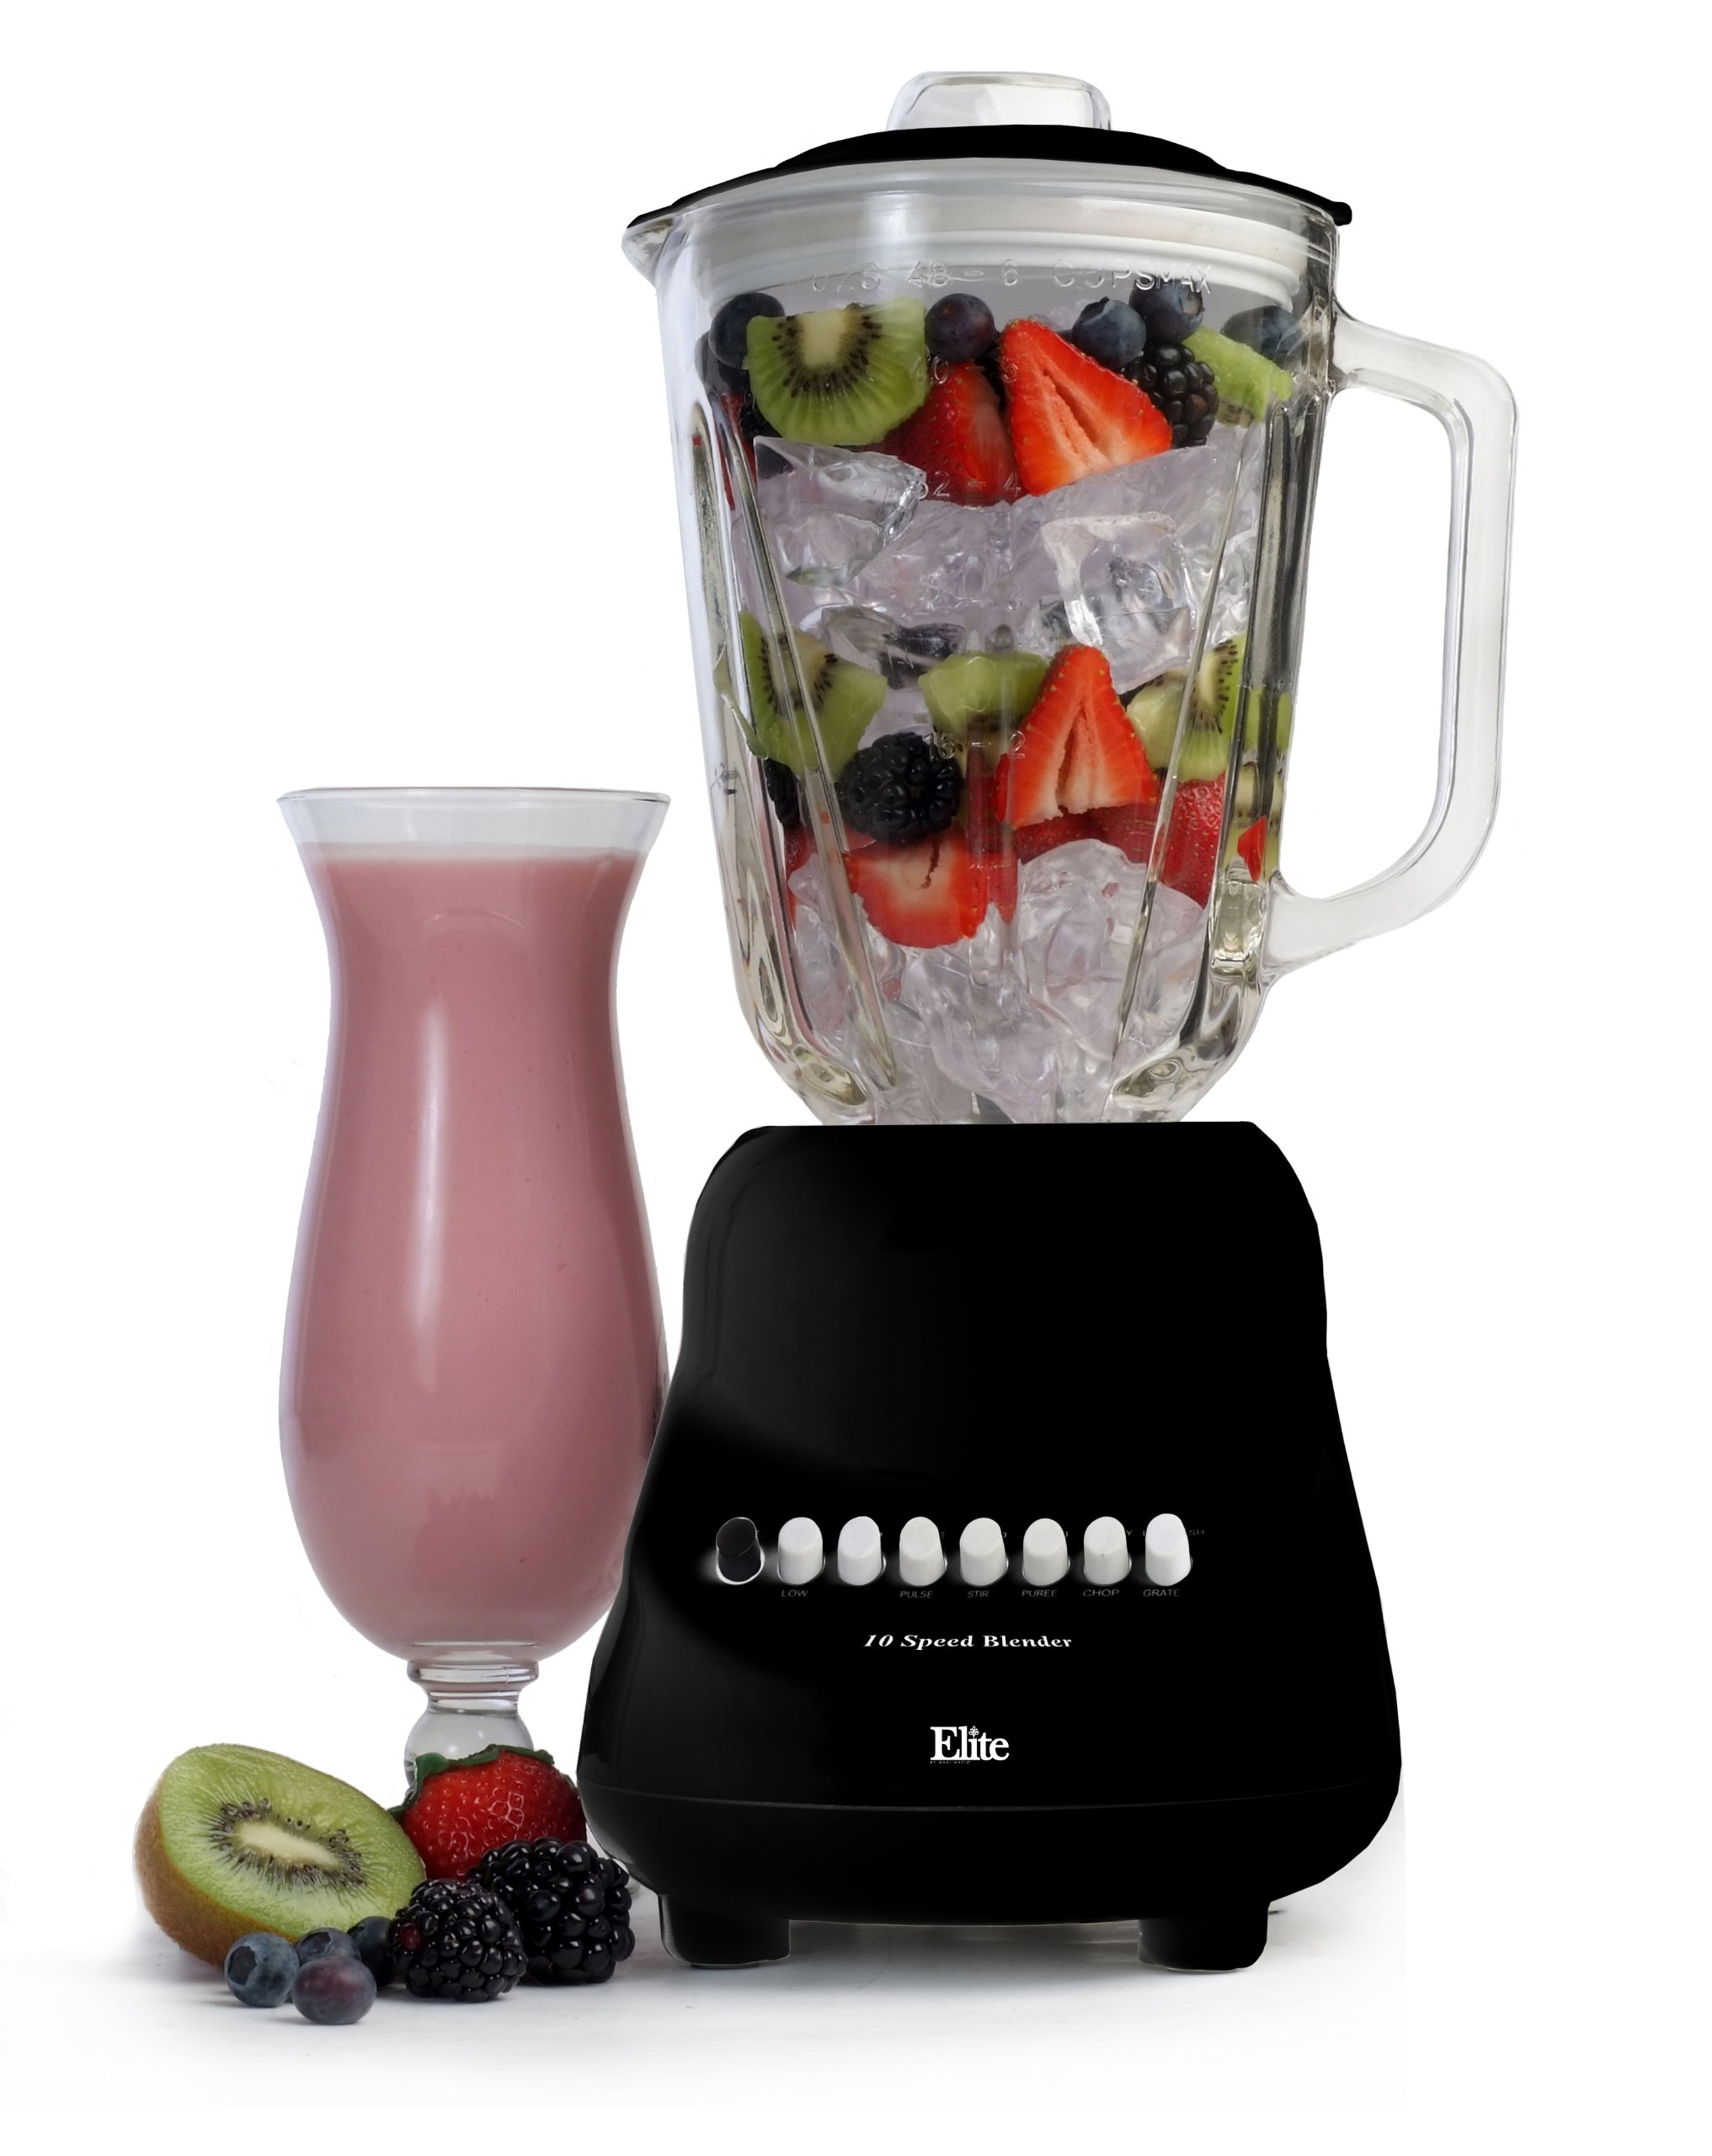 Elite Gourmet EBL-2000GB Maxi-Matic 10-Speed Blender with 48-Ounce Glass Jar, 450-Watt, Black